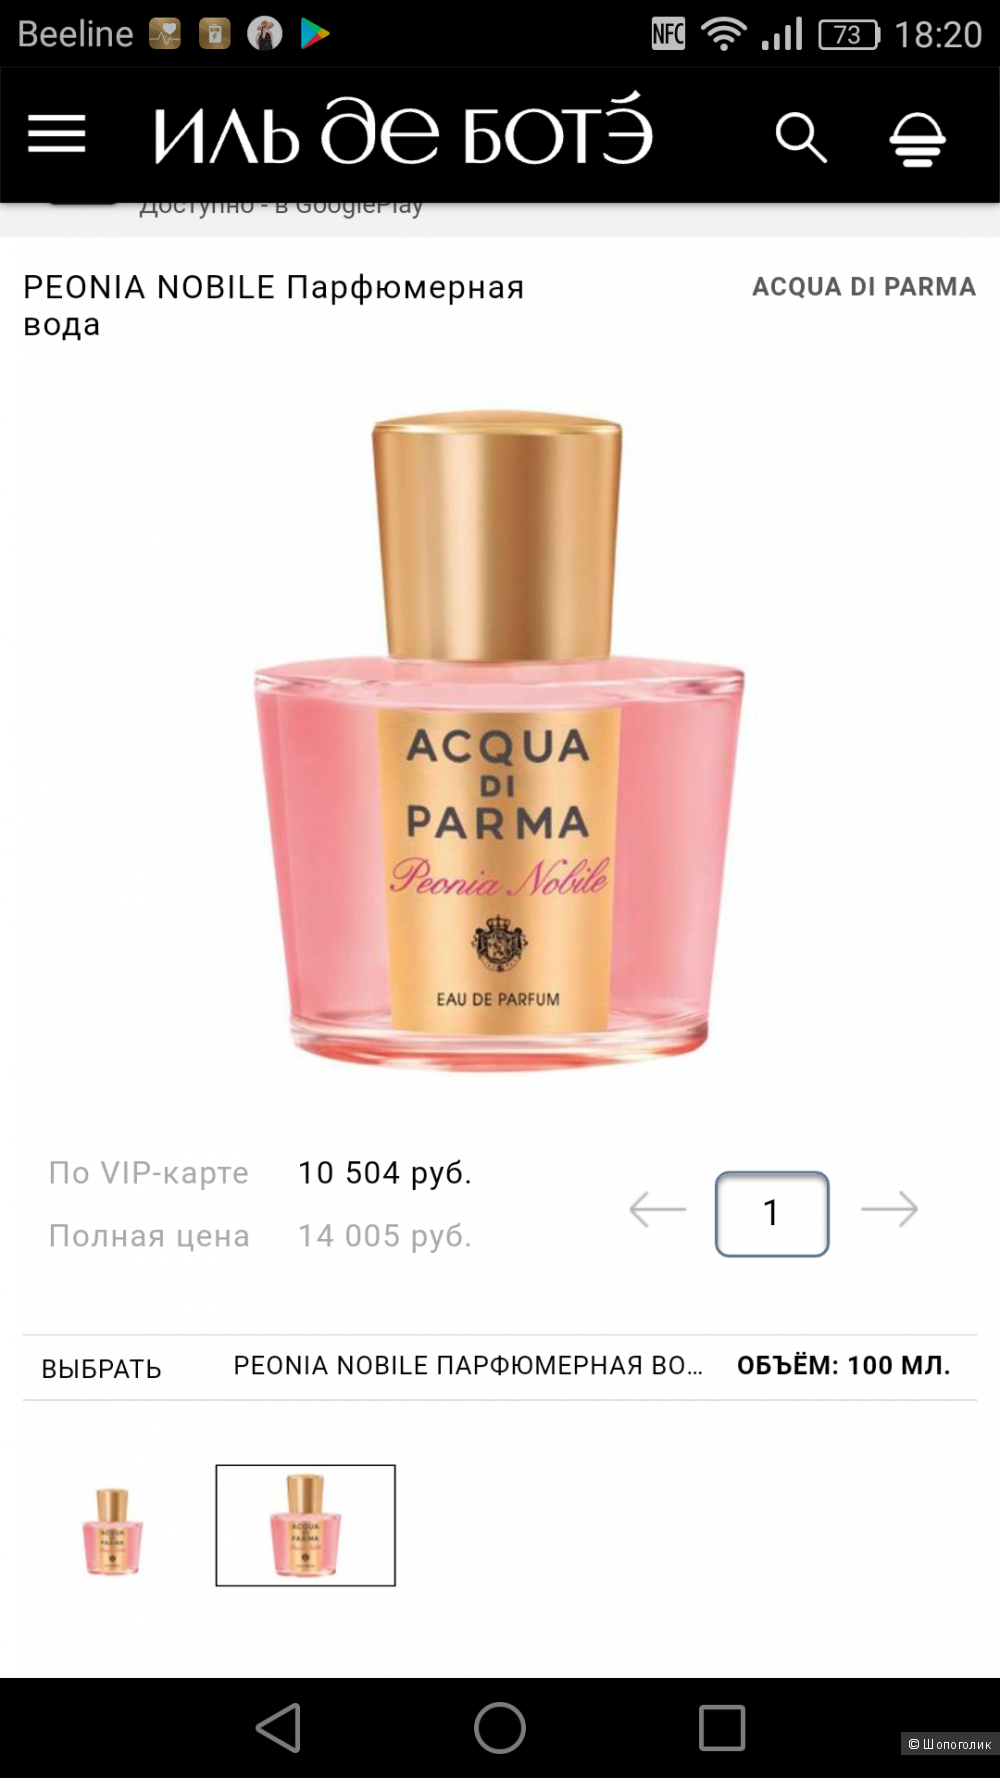 Acqua di Parma Peonia Nobile .100 ml. Parfum